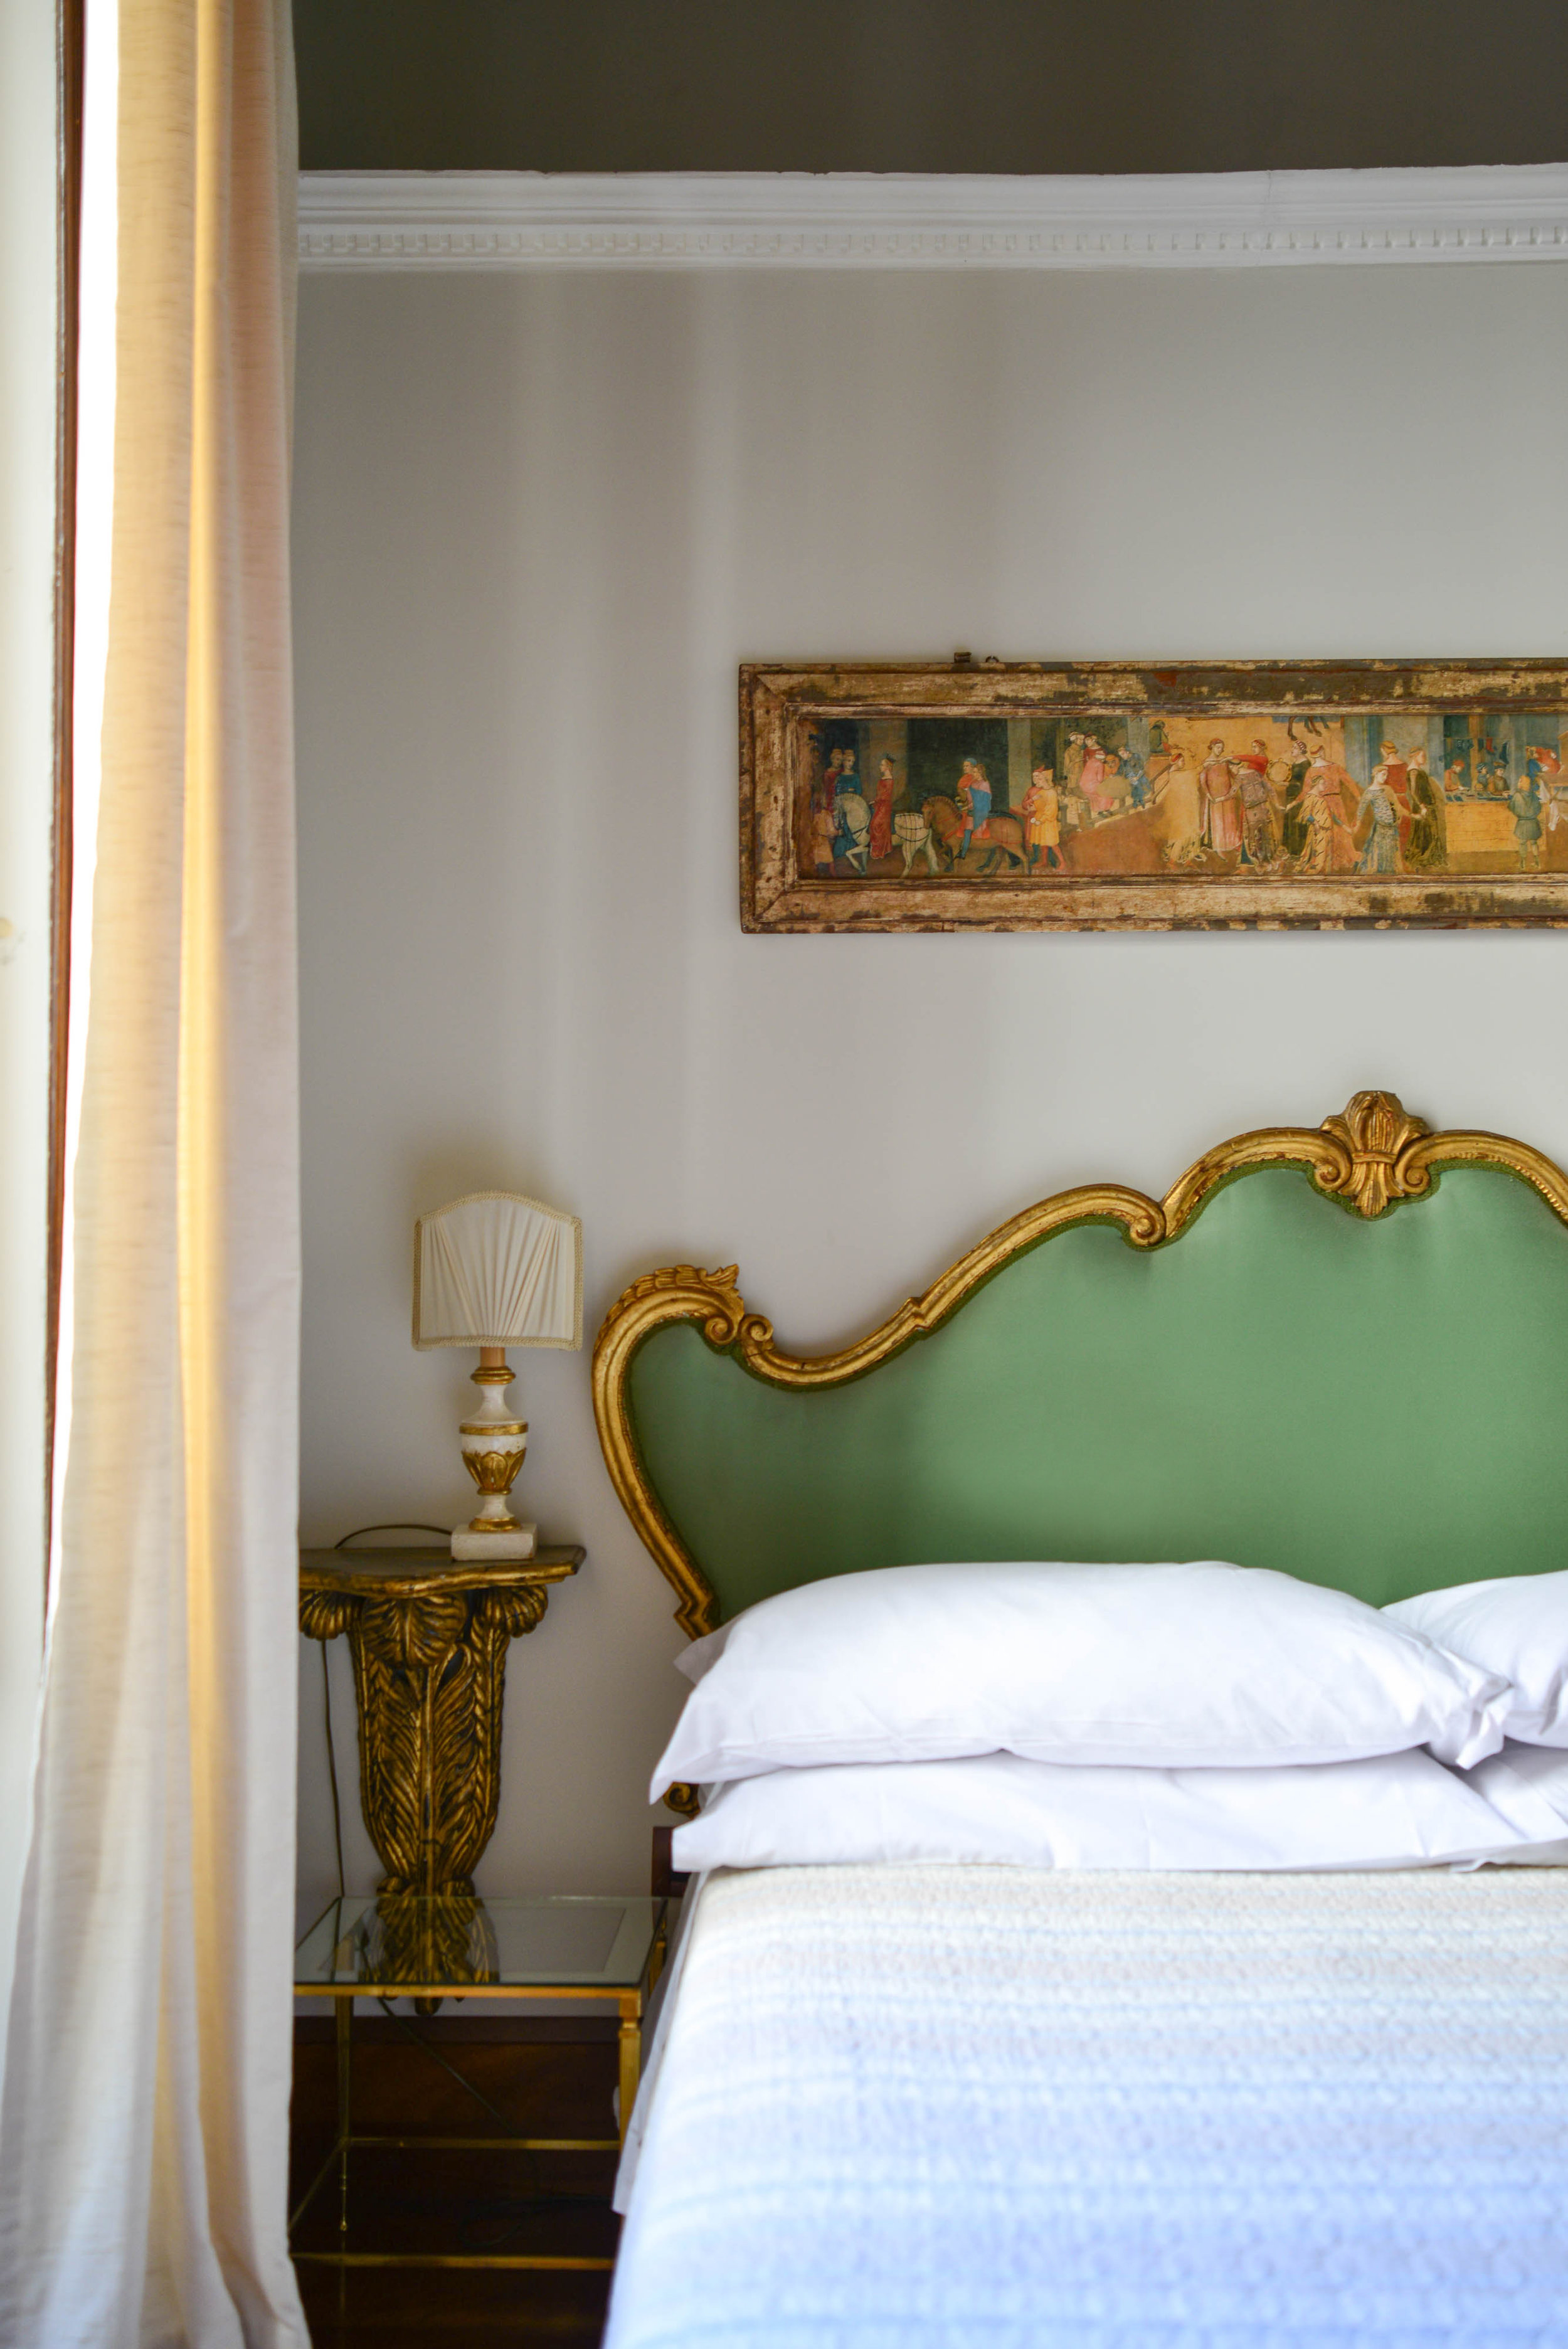 Vignette of the bed the studio in Rione Regola | Lauren Caron © A Layered Life 2017